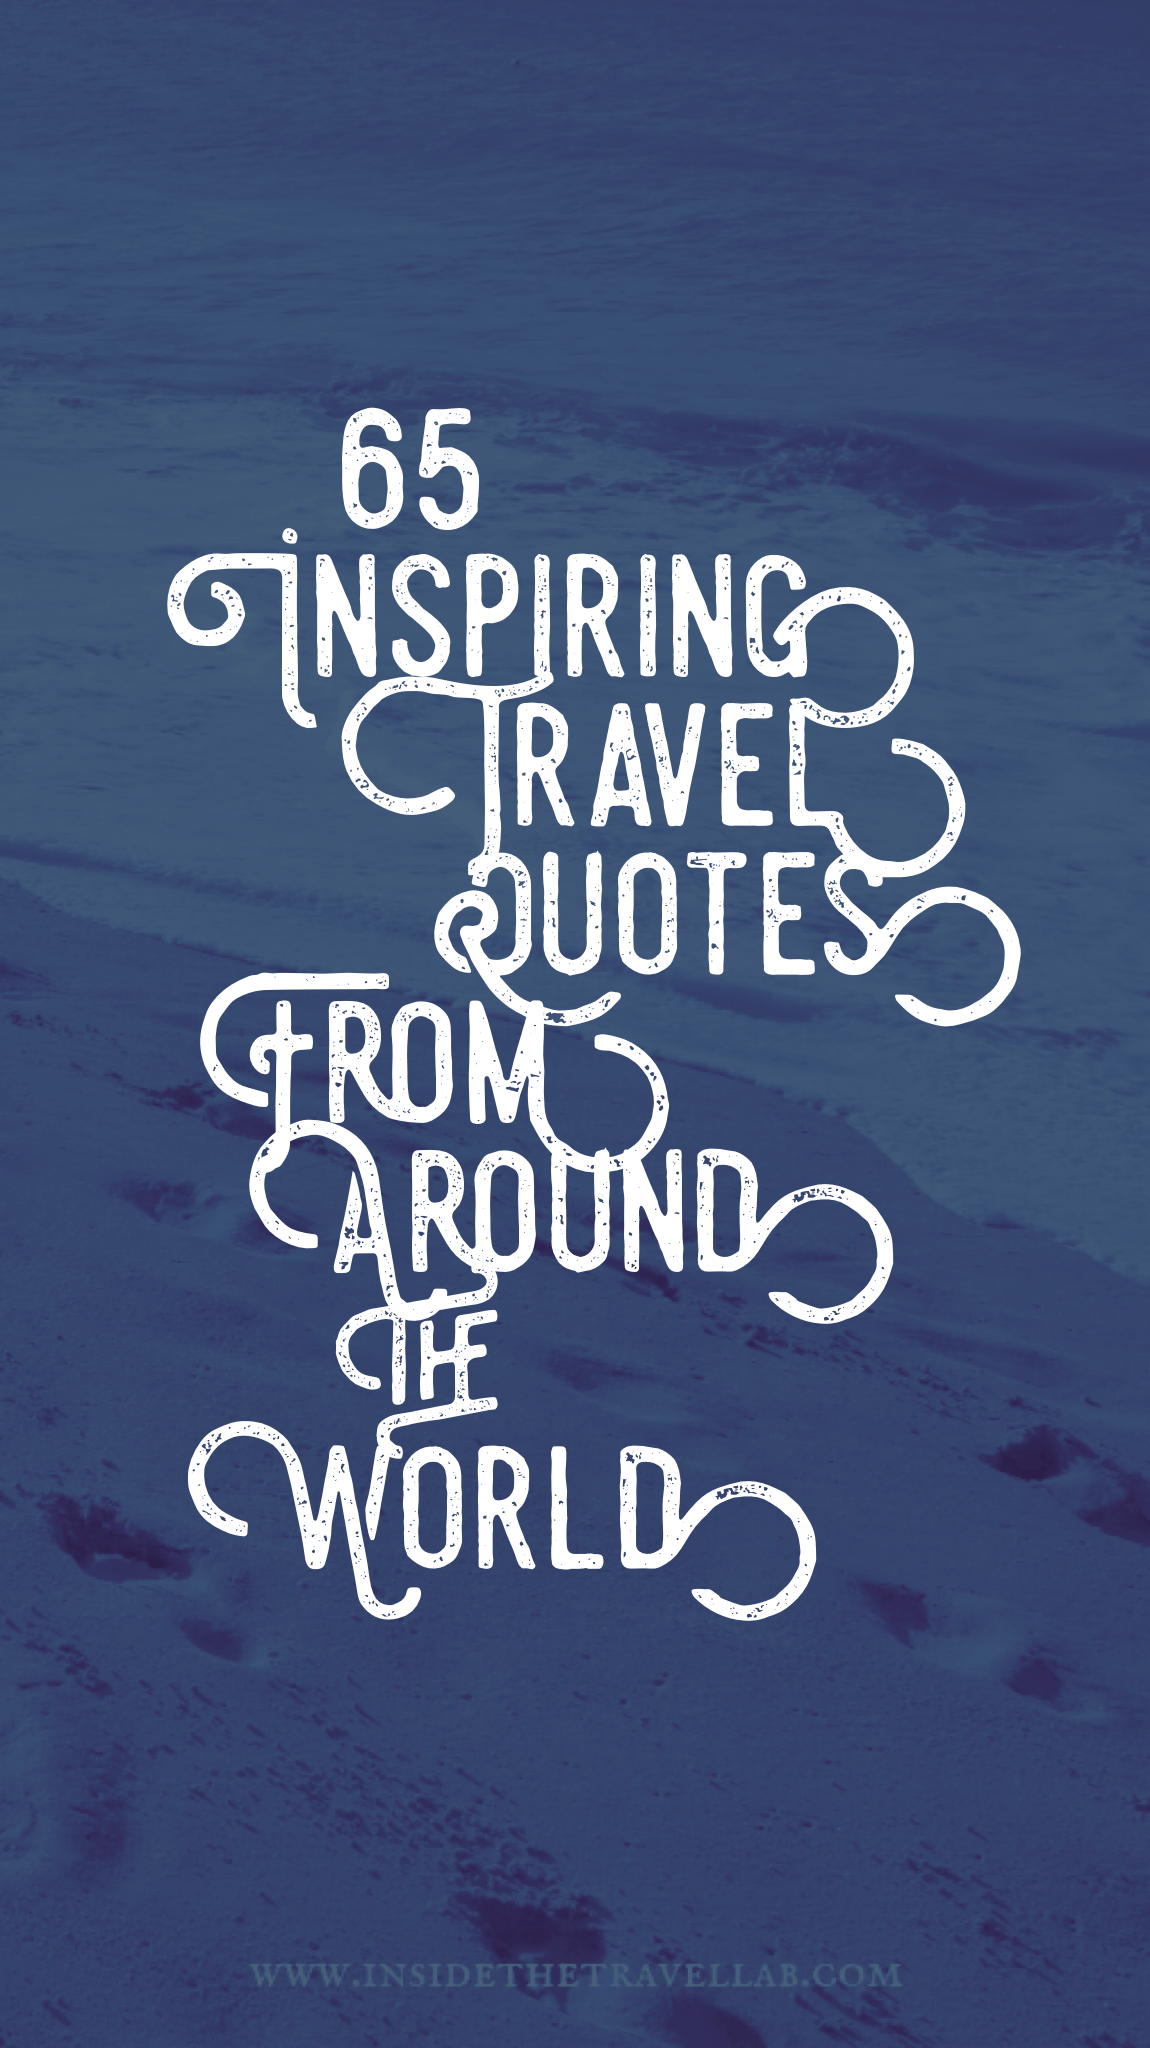 65 Inspiring Travel Quotes